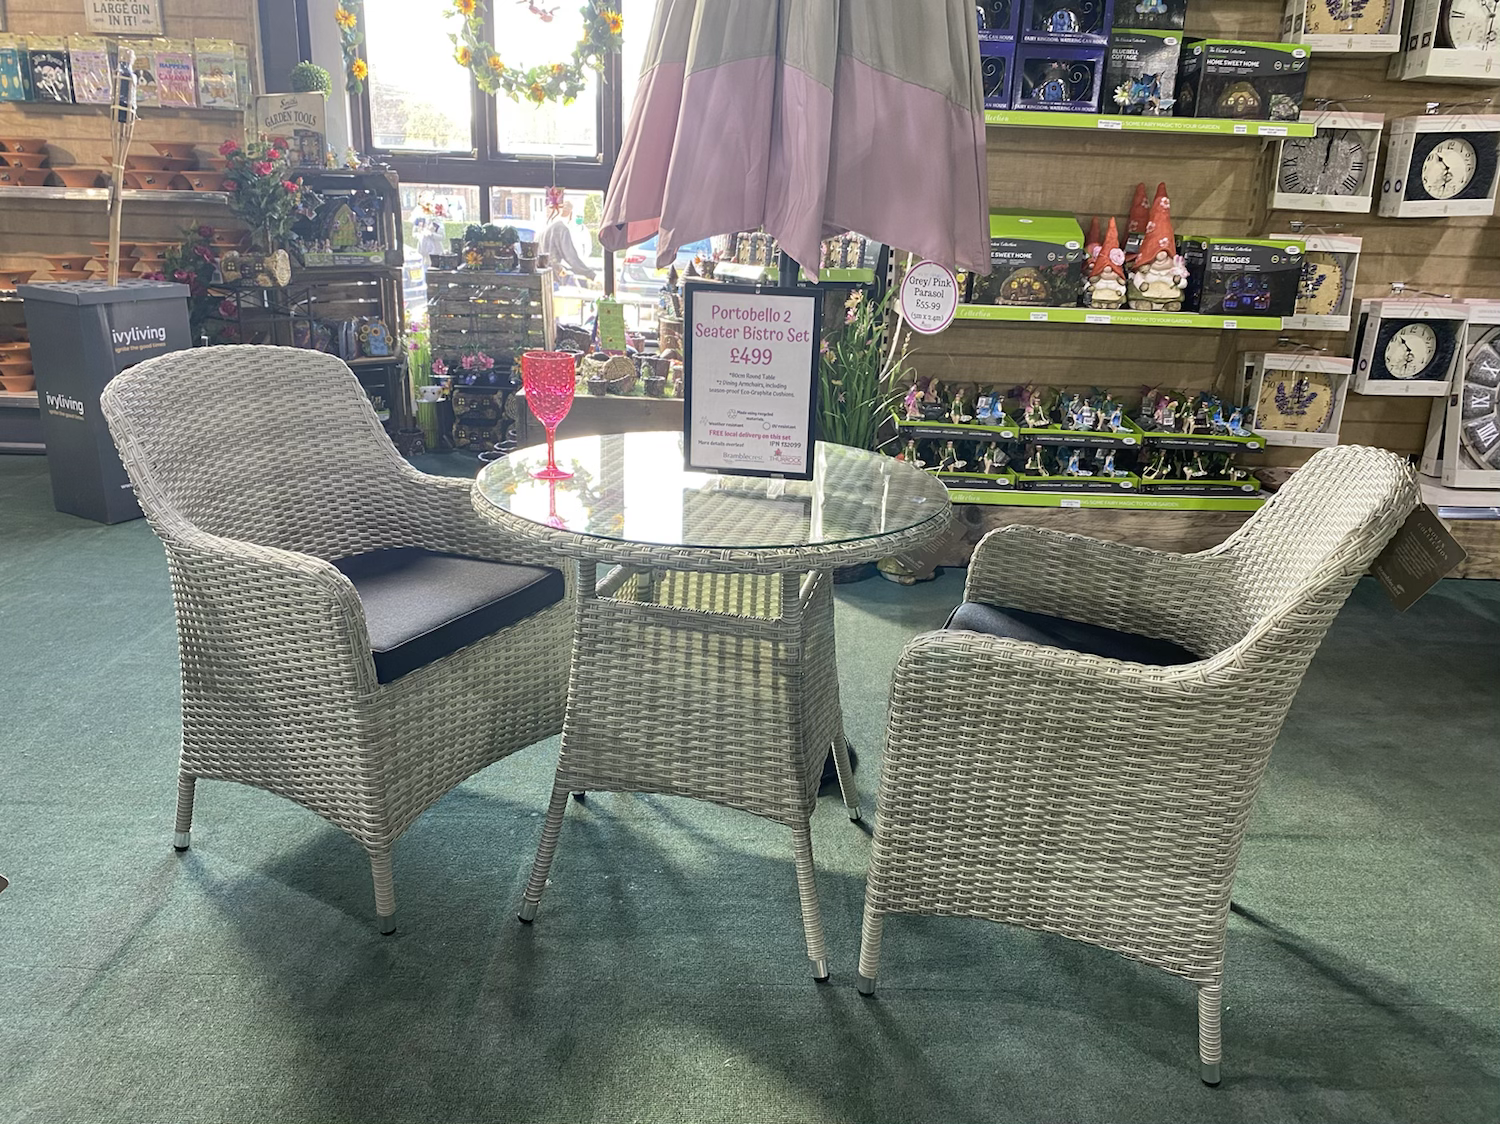 Portobello 2 Seater Bistro Set - £499